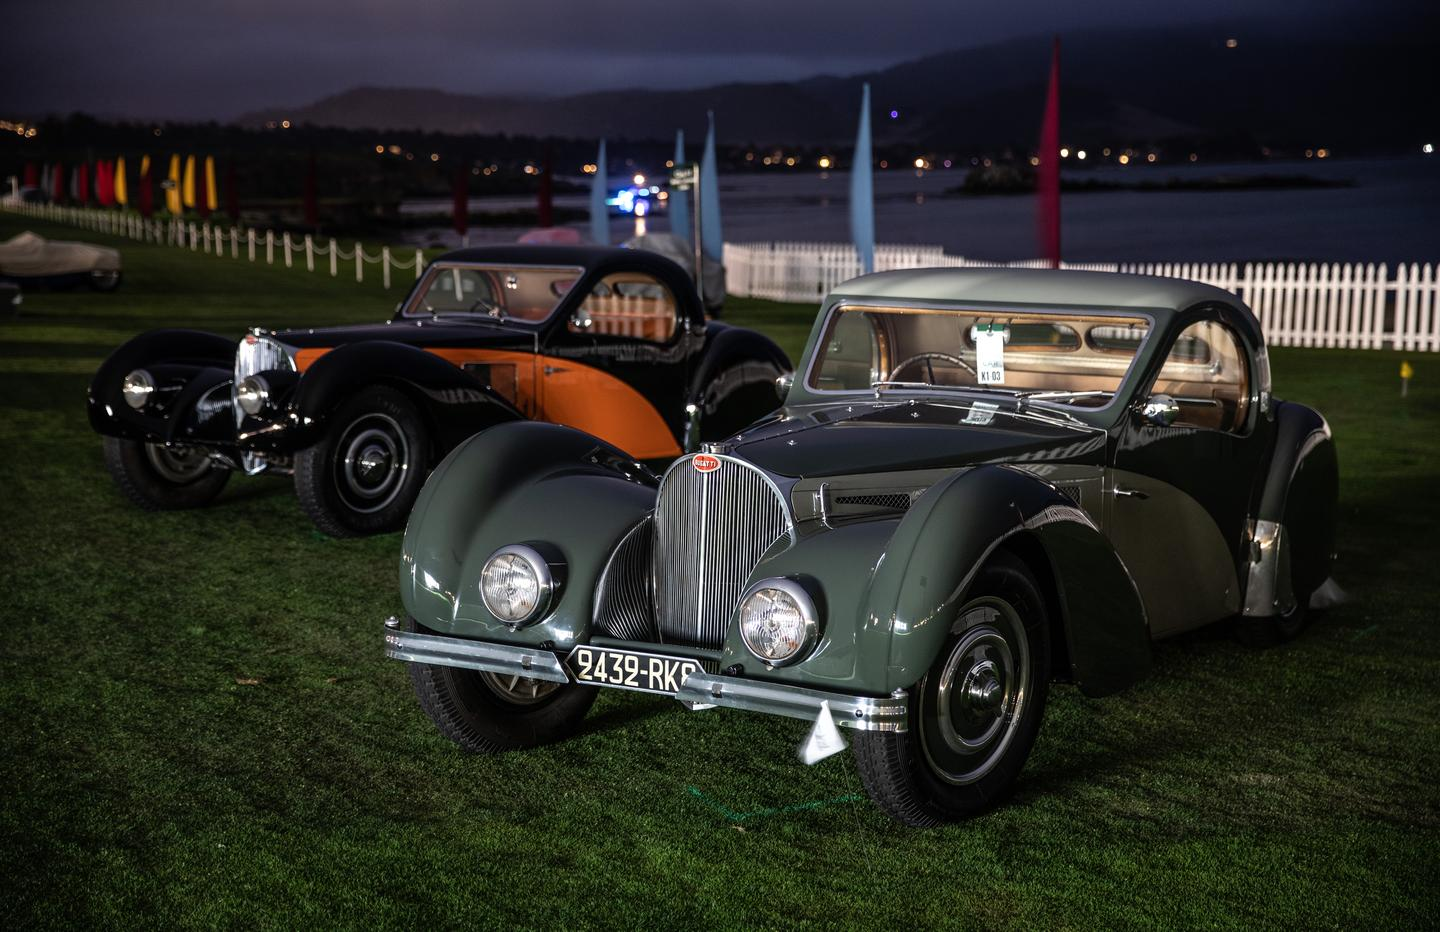 Dawn at the Pebble Beach Concours d'Elegance saw this pair of Bugatti Type 57SC Atalantes together awaiting the festivities of the day. At right is the winner of the K-1 Class for Bugattis, a 1937 model from a private New York Collection, while at left is a 1936 model owned by Rob and Melanie Walton of Scottsdale Arizona.